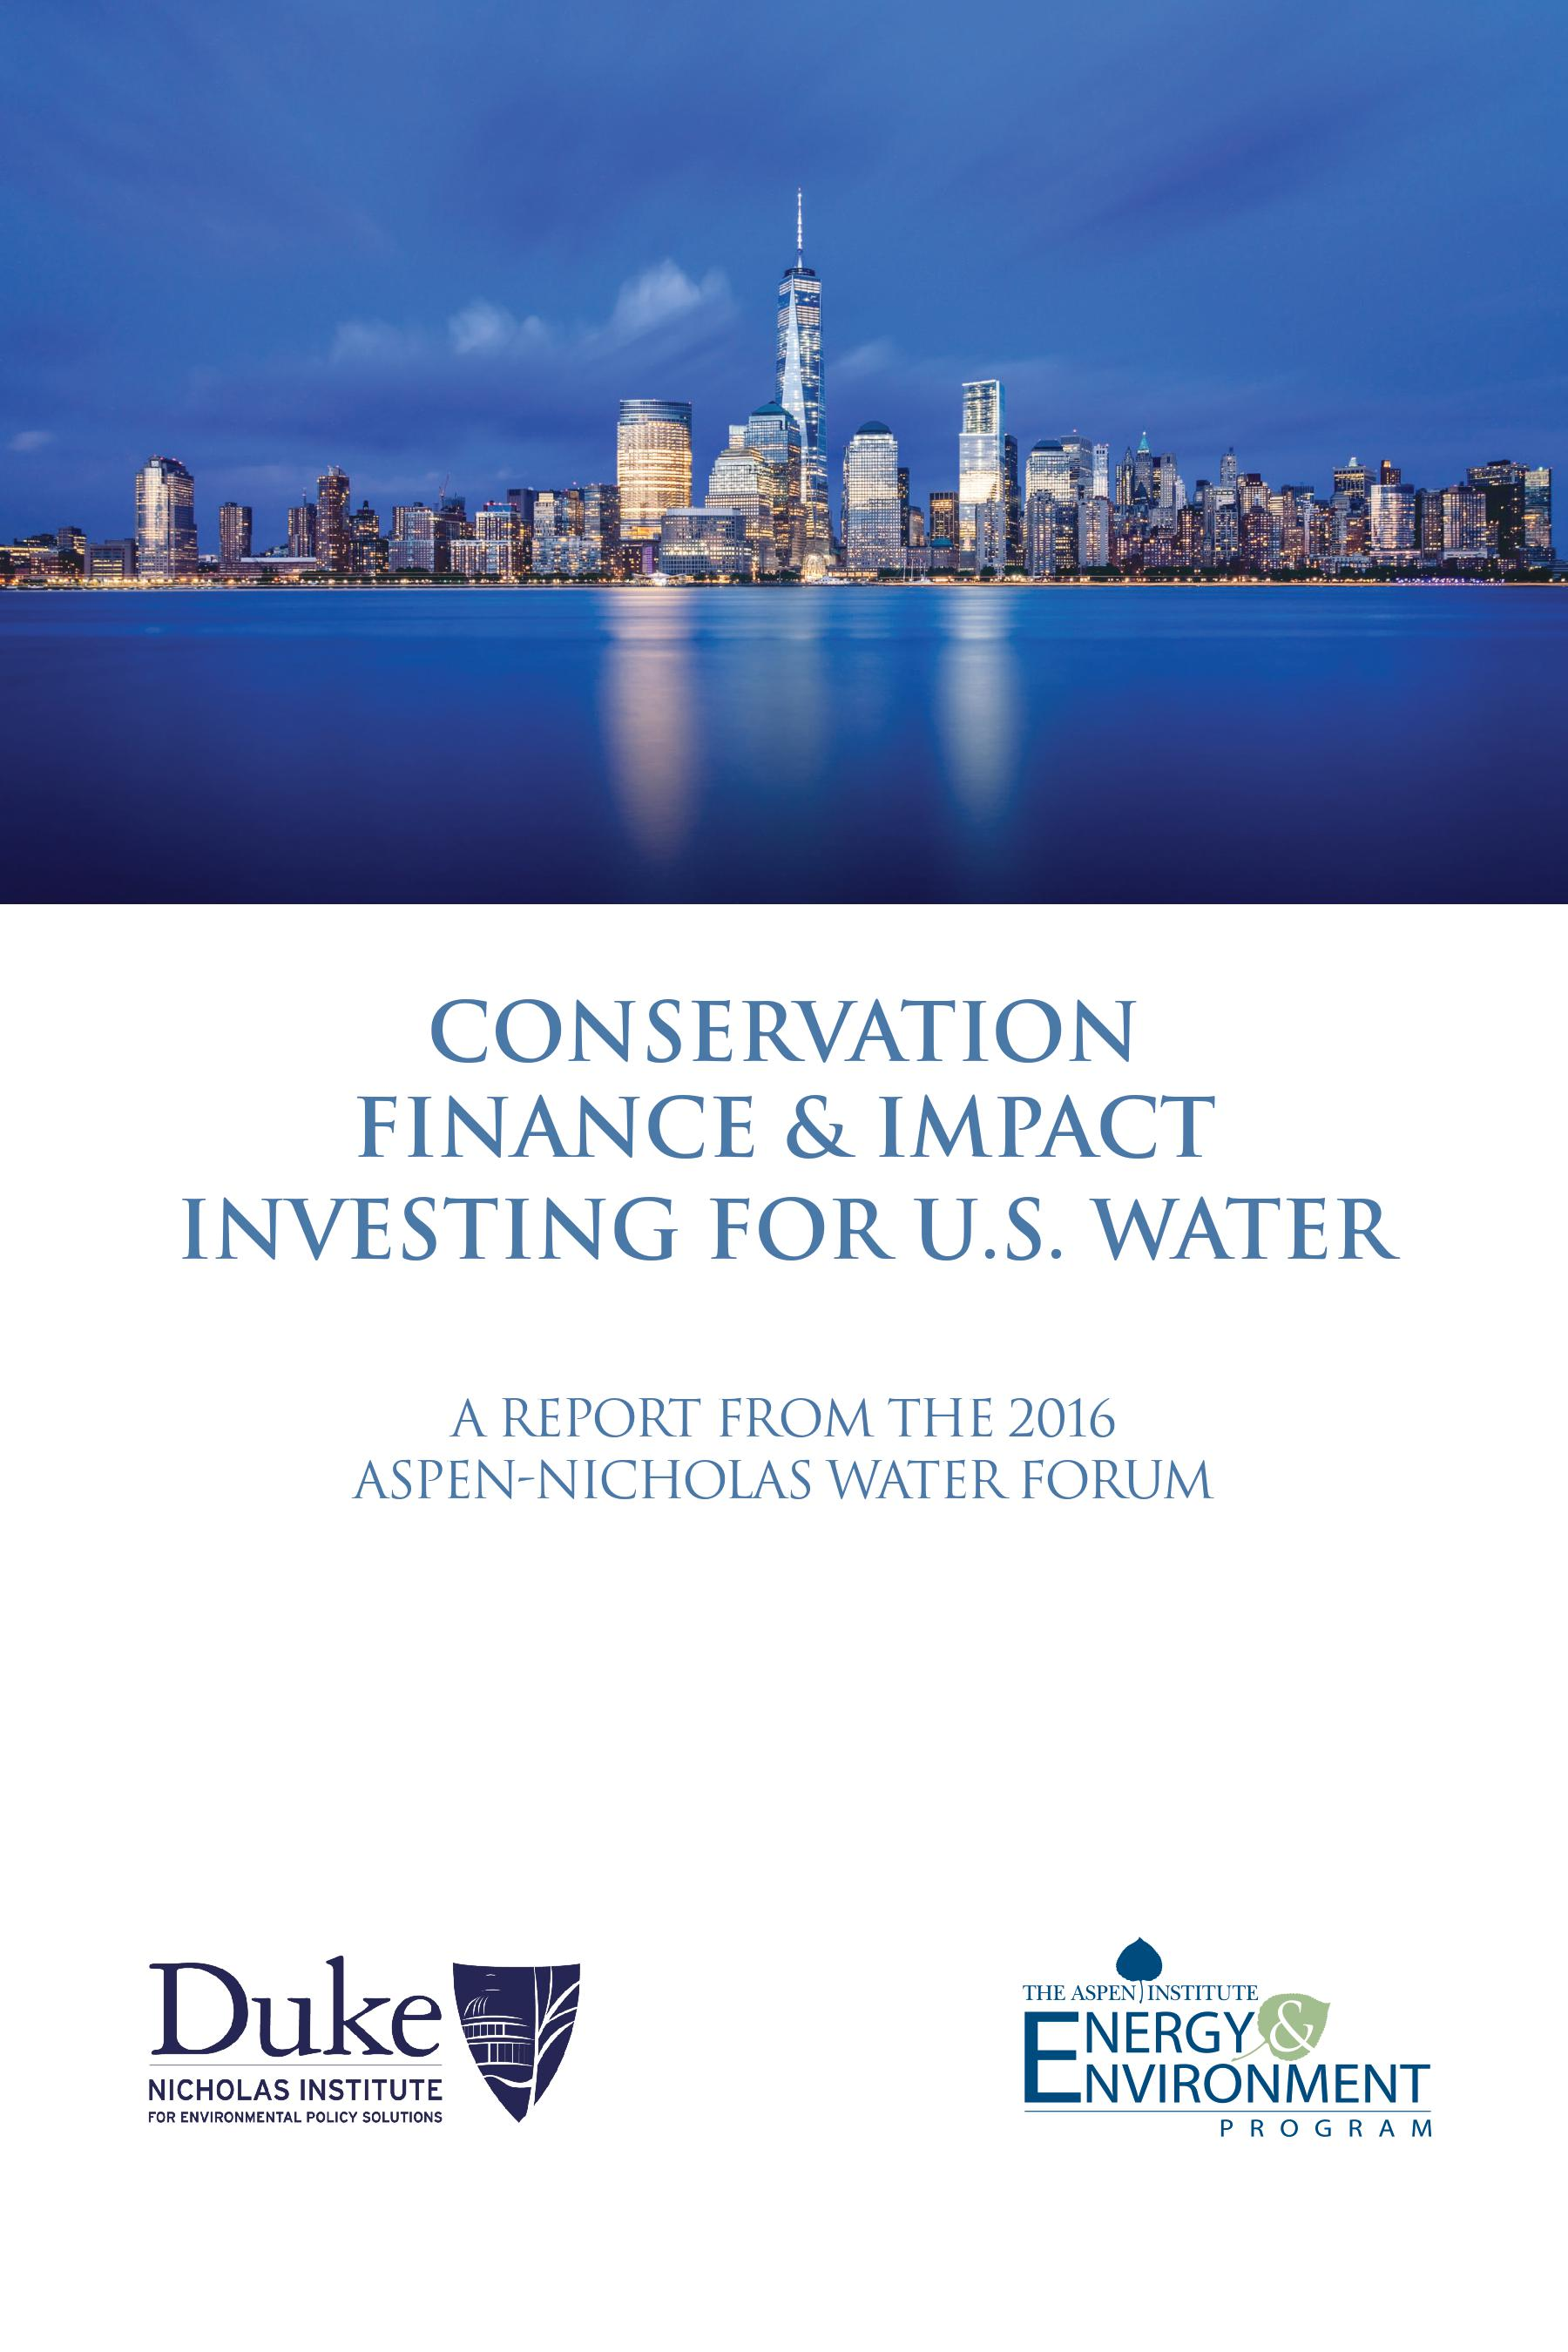 Conservation Finance & Impact Investing for U.S. Water: A Report from the 2016 Aspen-Nicholas Water Forum